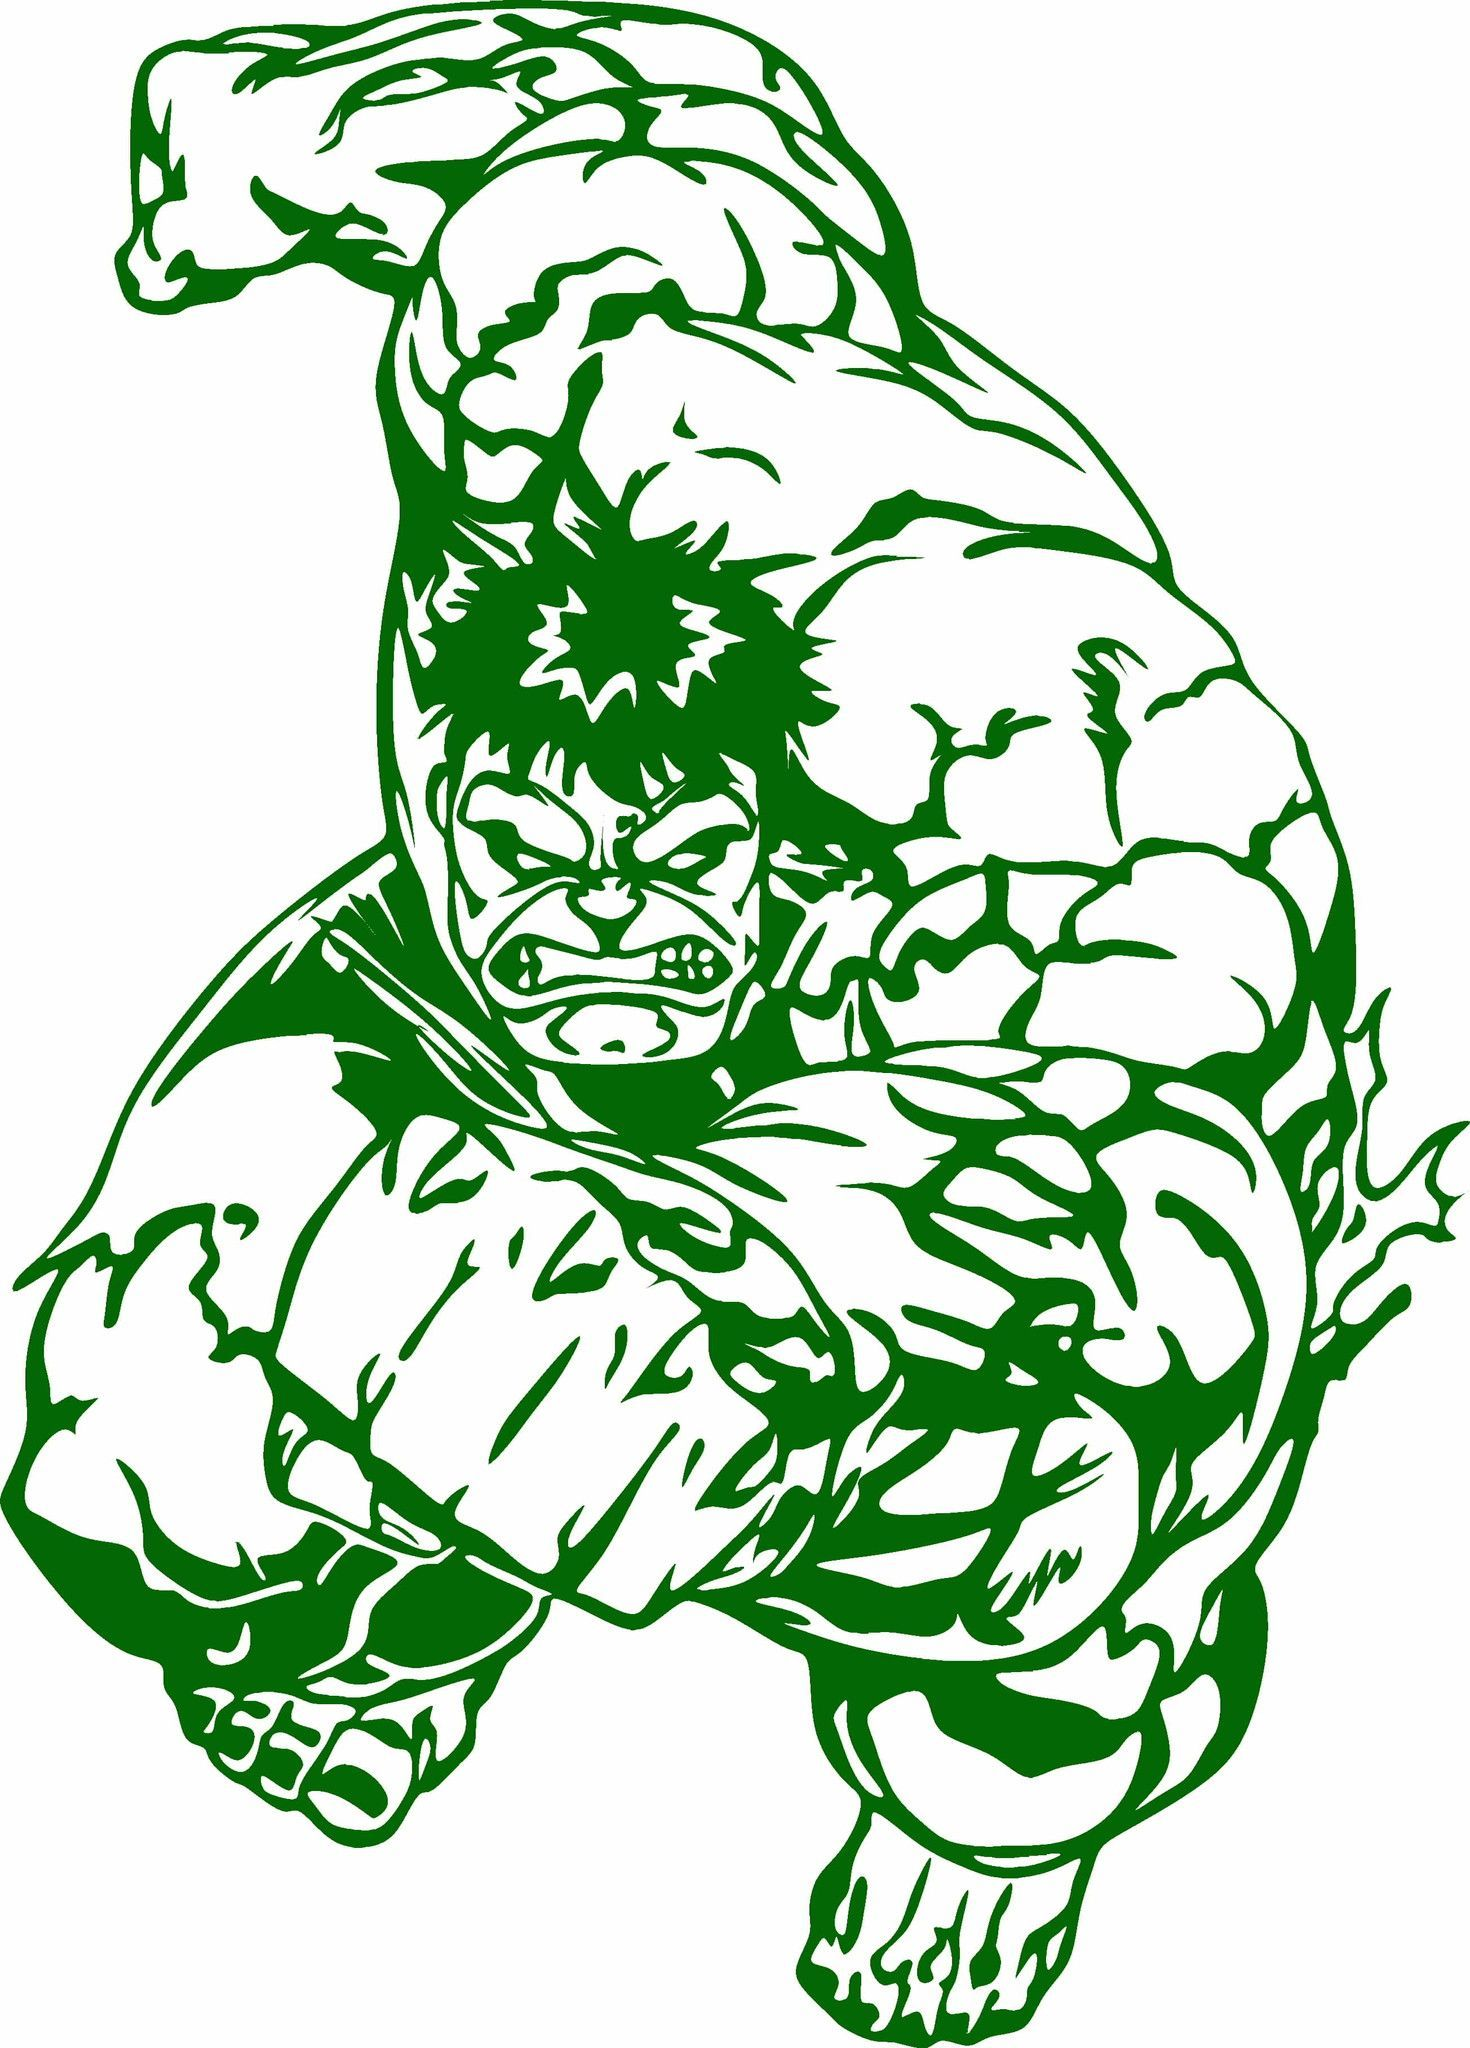 Incredible Hulk Wall Stickers Hulk Running Vinyl Cut Out Decal Choose Your Color And